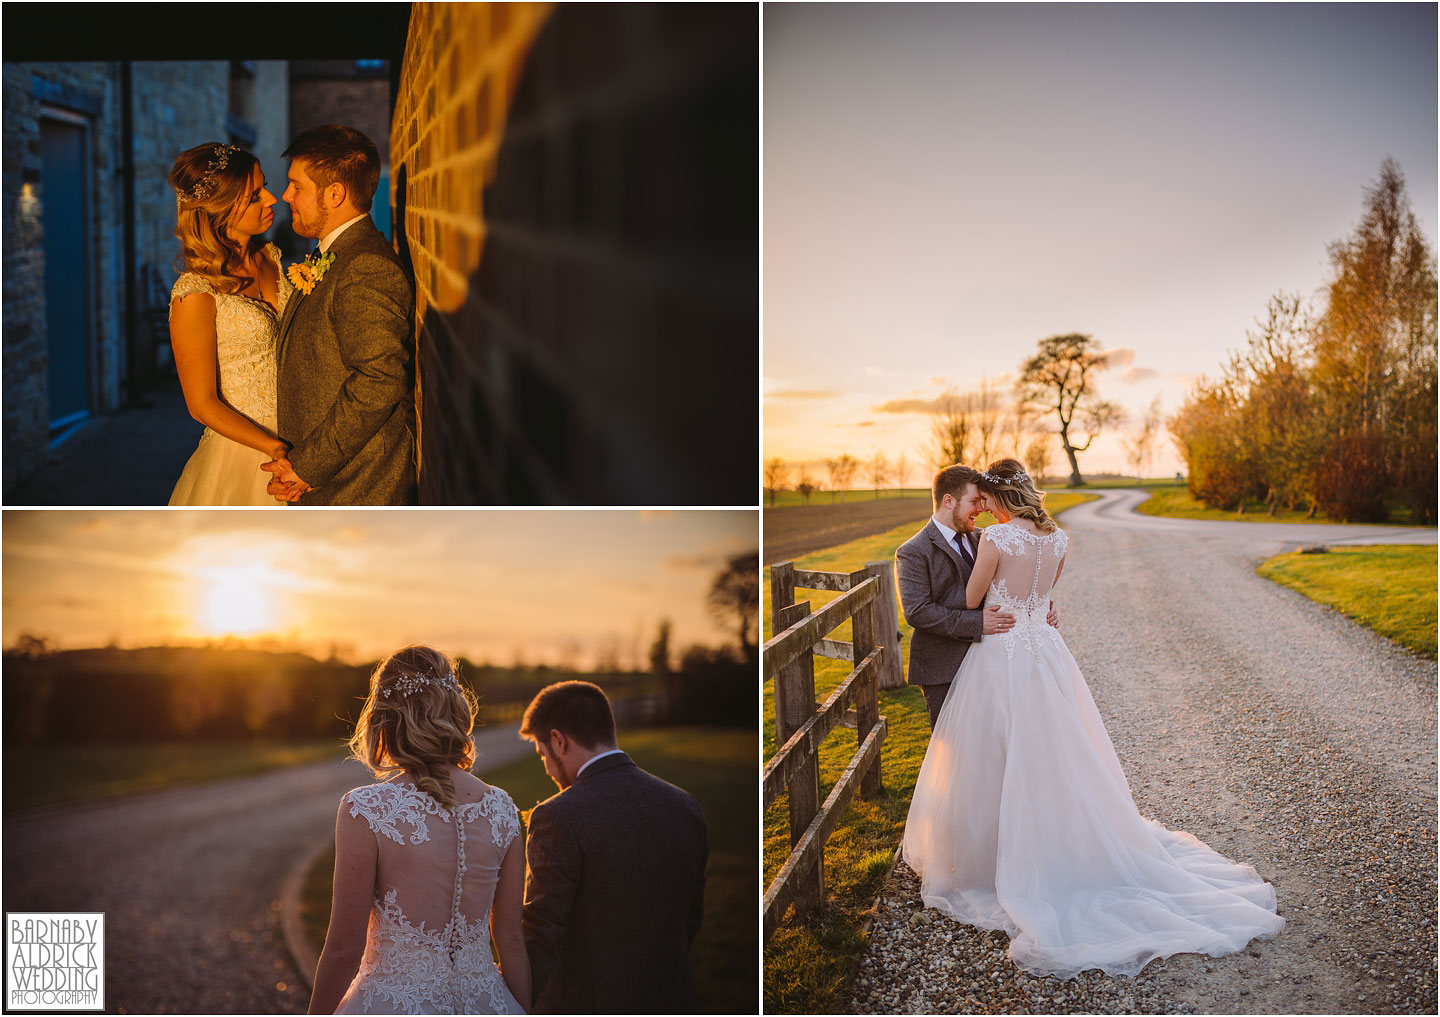 Sunset photos at Priory Cottages, Golden hour at The Priory Yorkshire, Evening wedding photo ideas at Priory Cottages Yorkshire